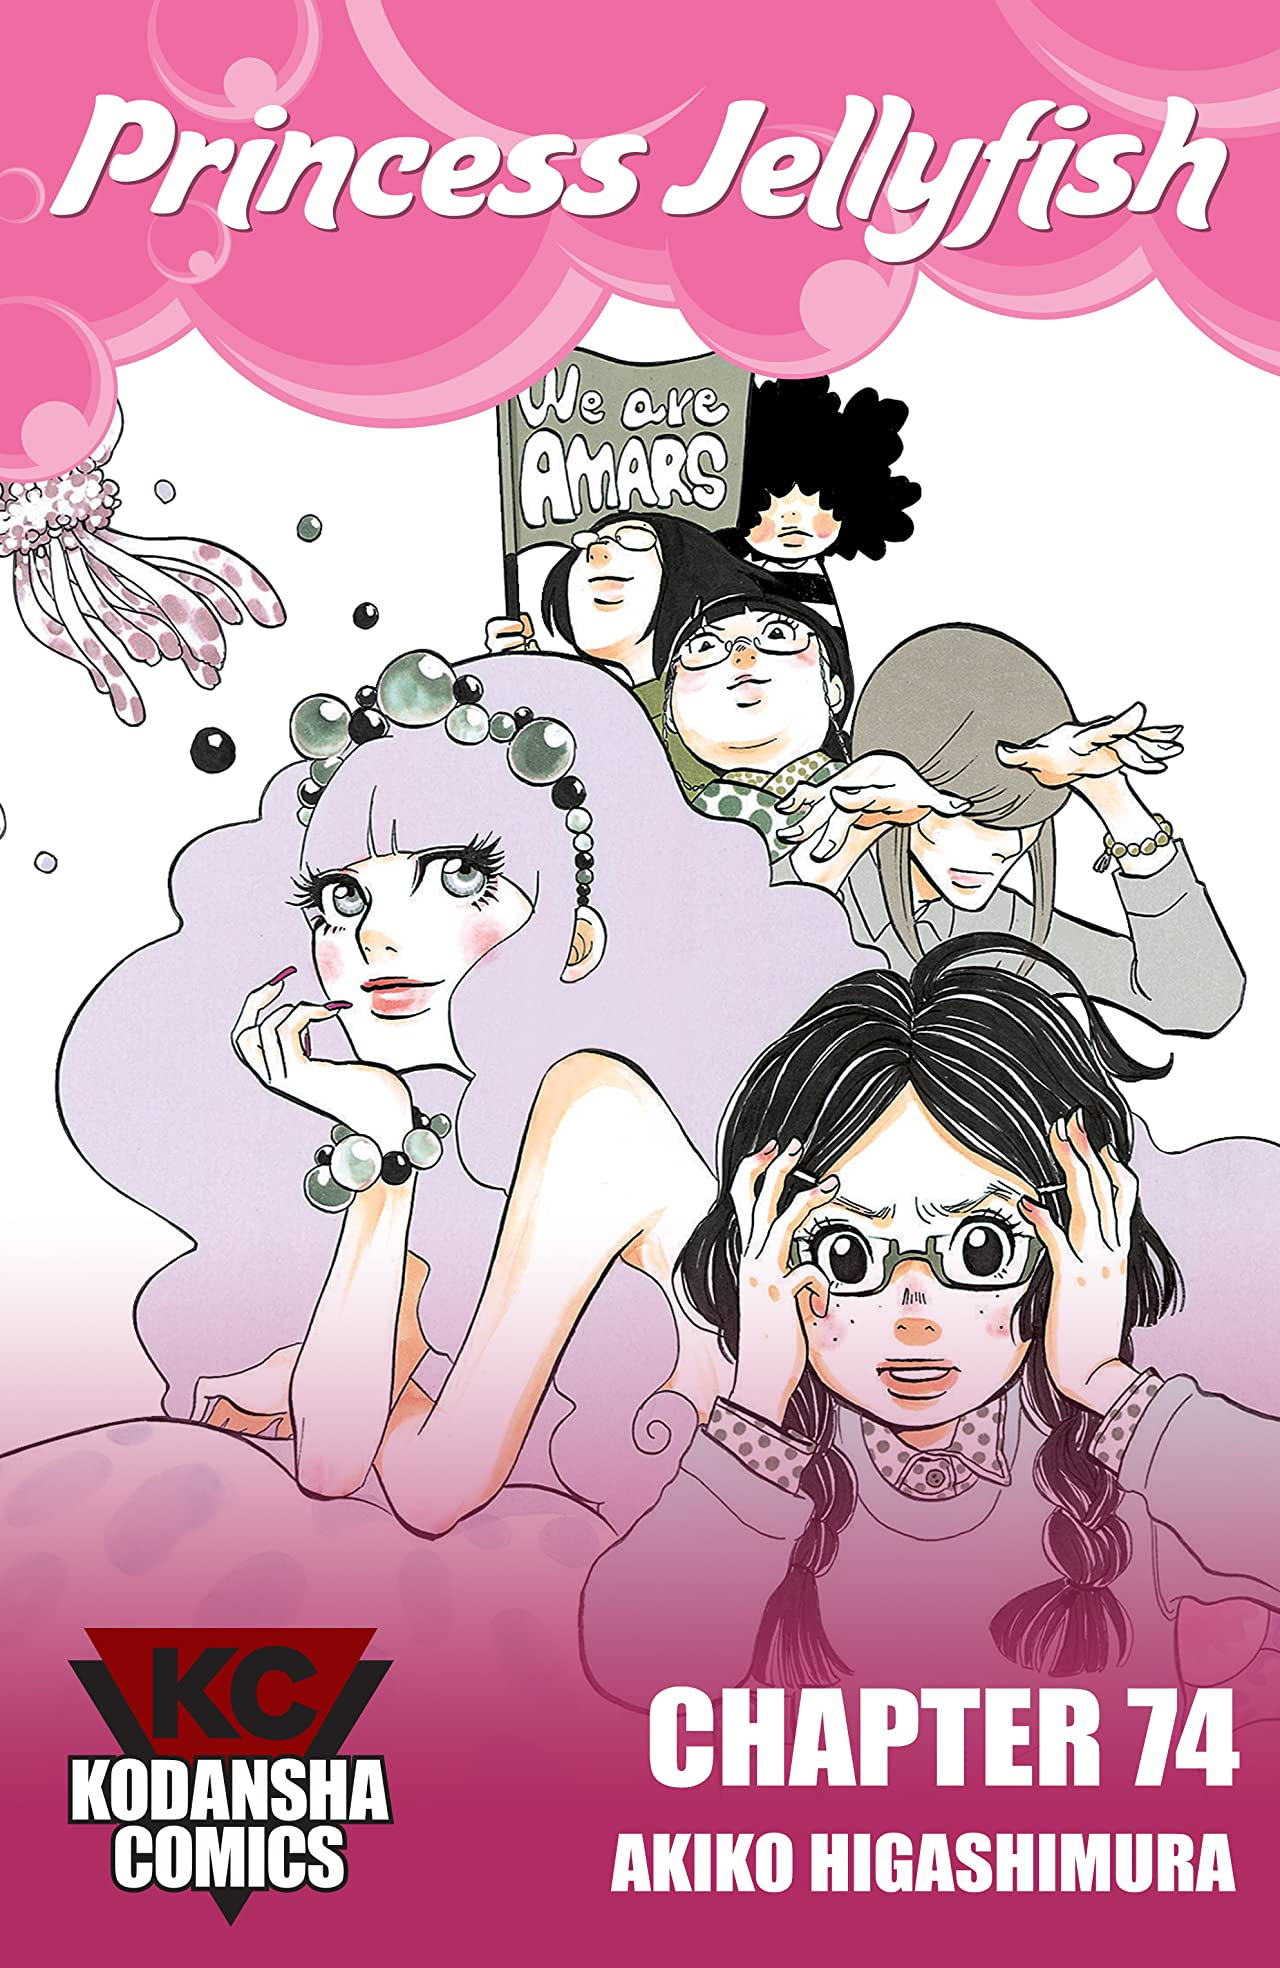 Princess Jellyfish #74